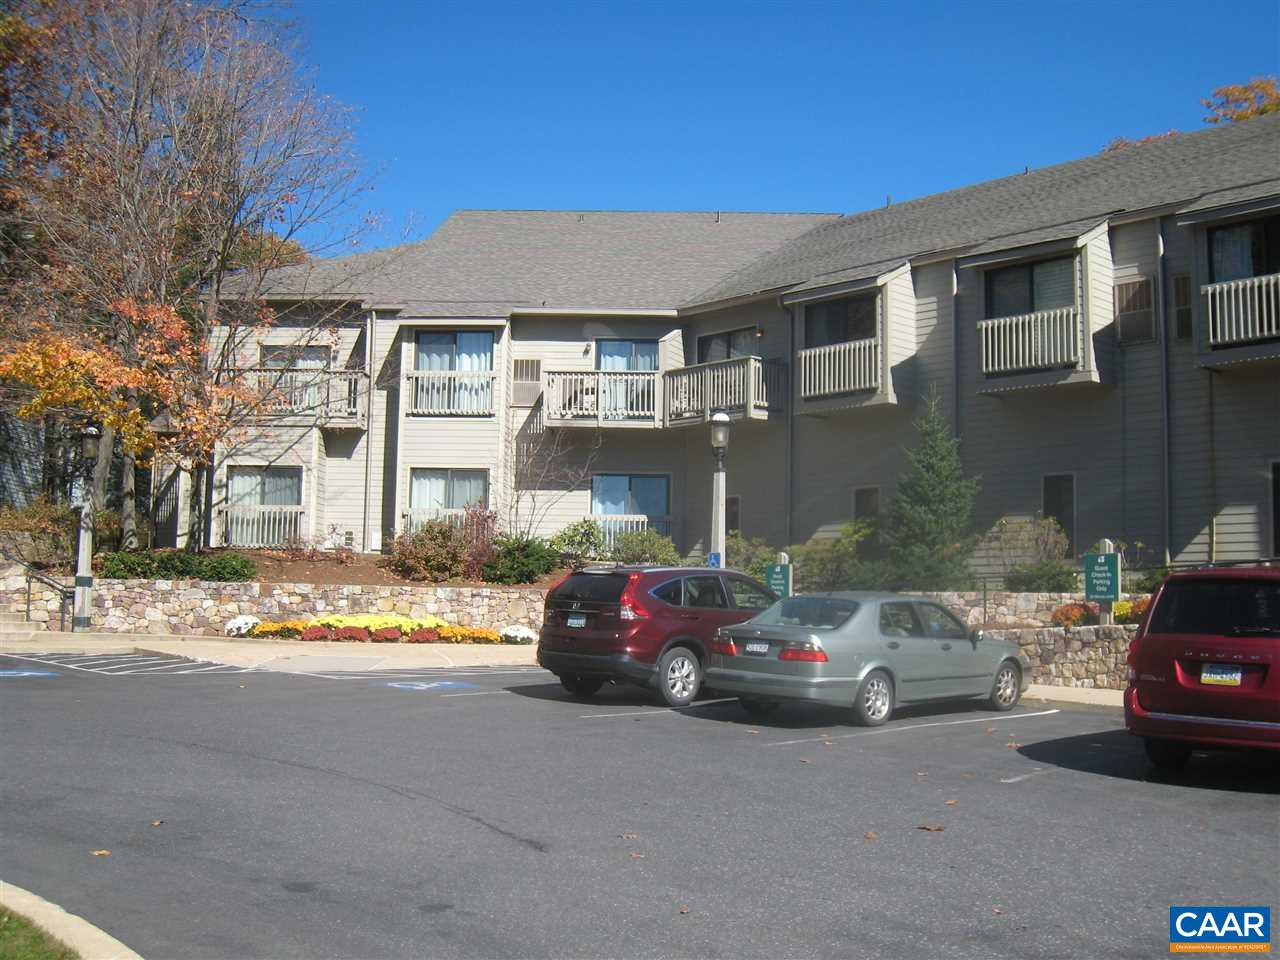 178 MOUNTAIN INN CONDOS, WINTERGREEN RESORT, VA 22958